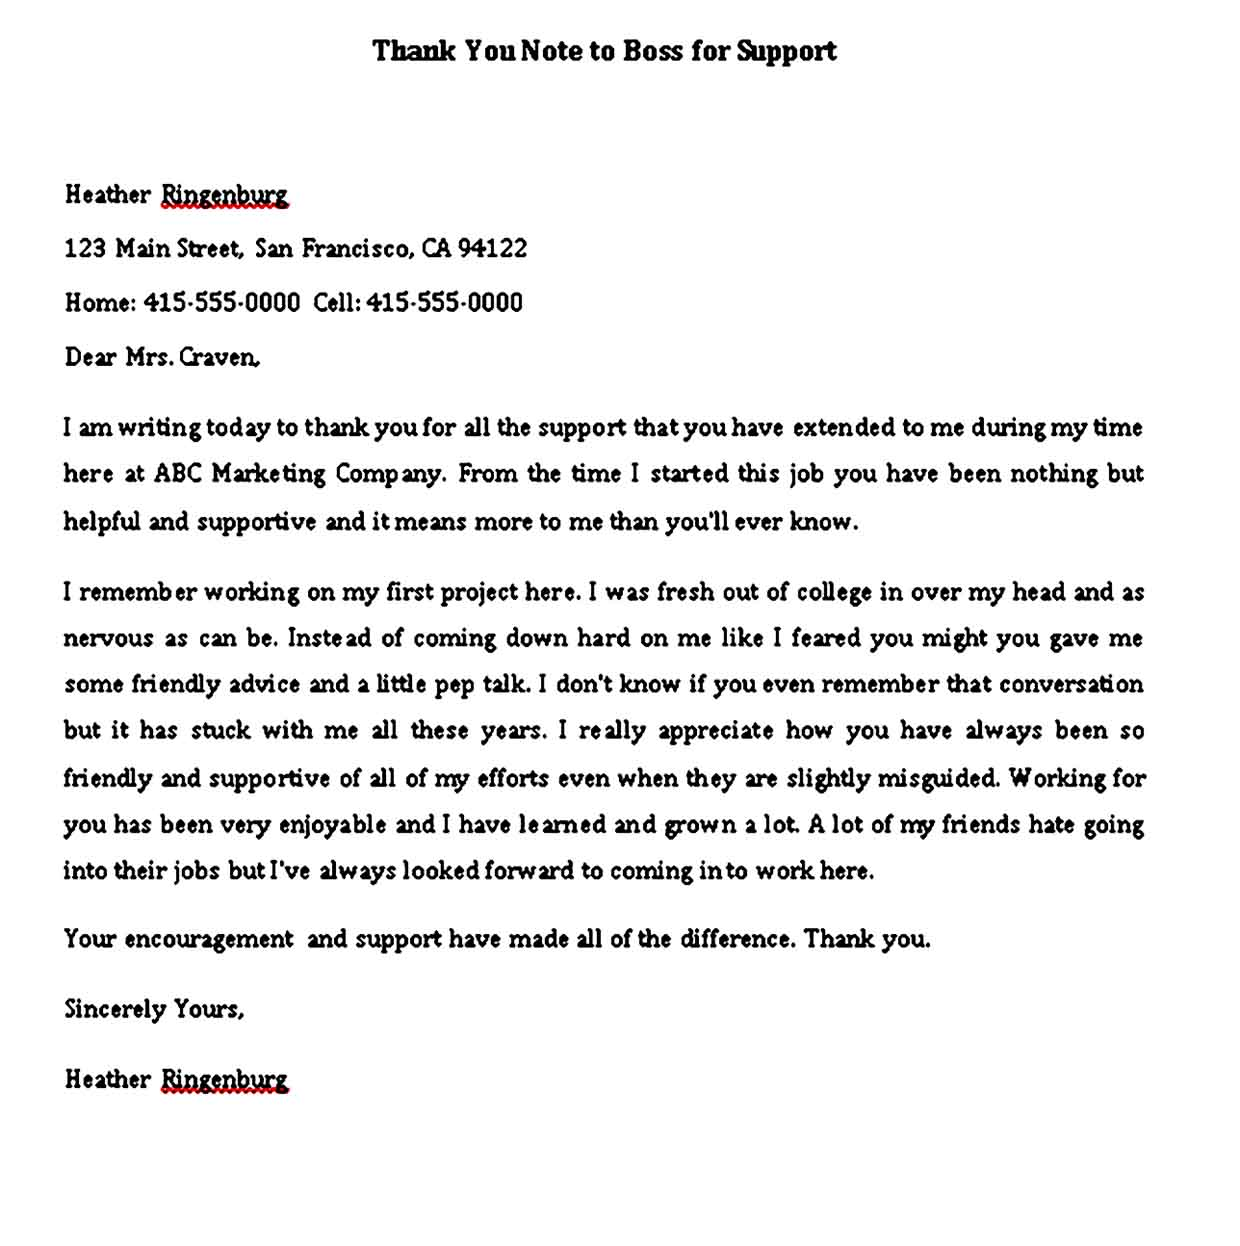 thank you note to boss for support